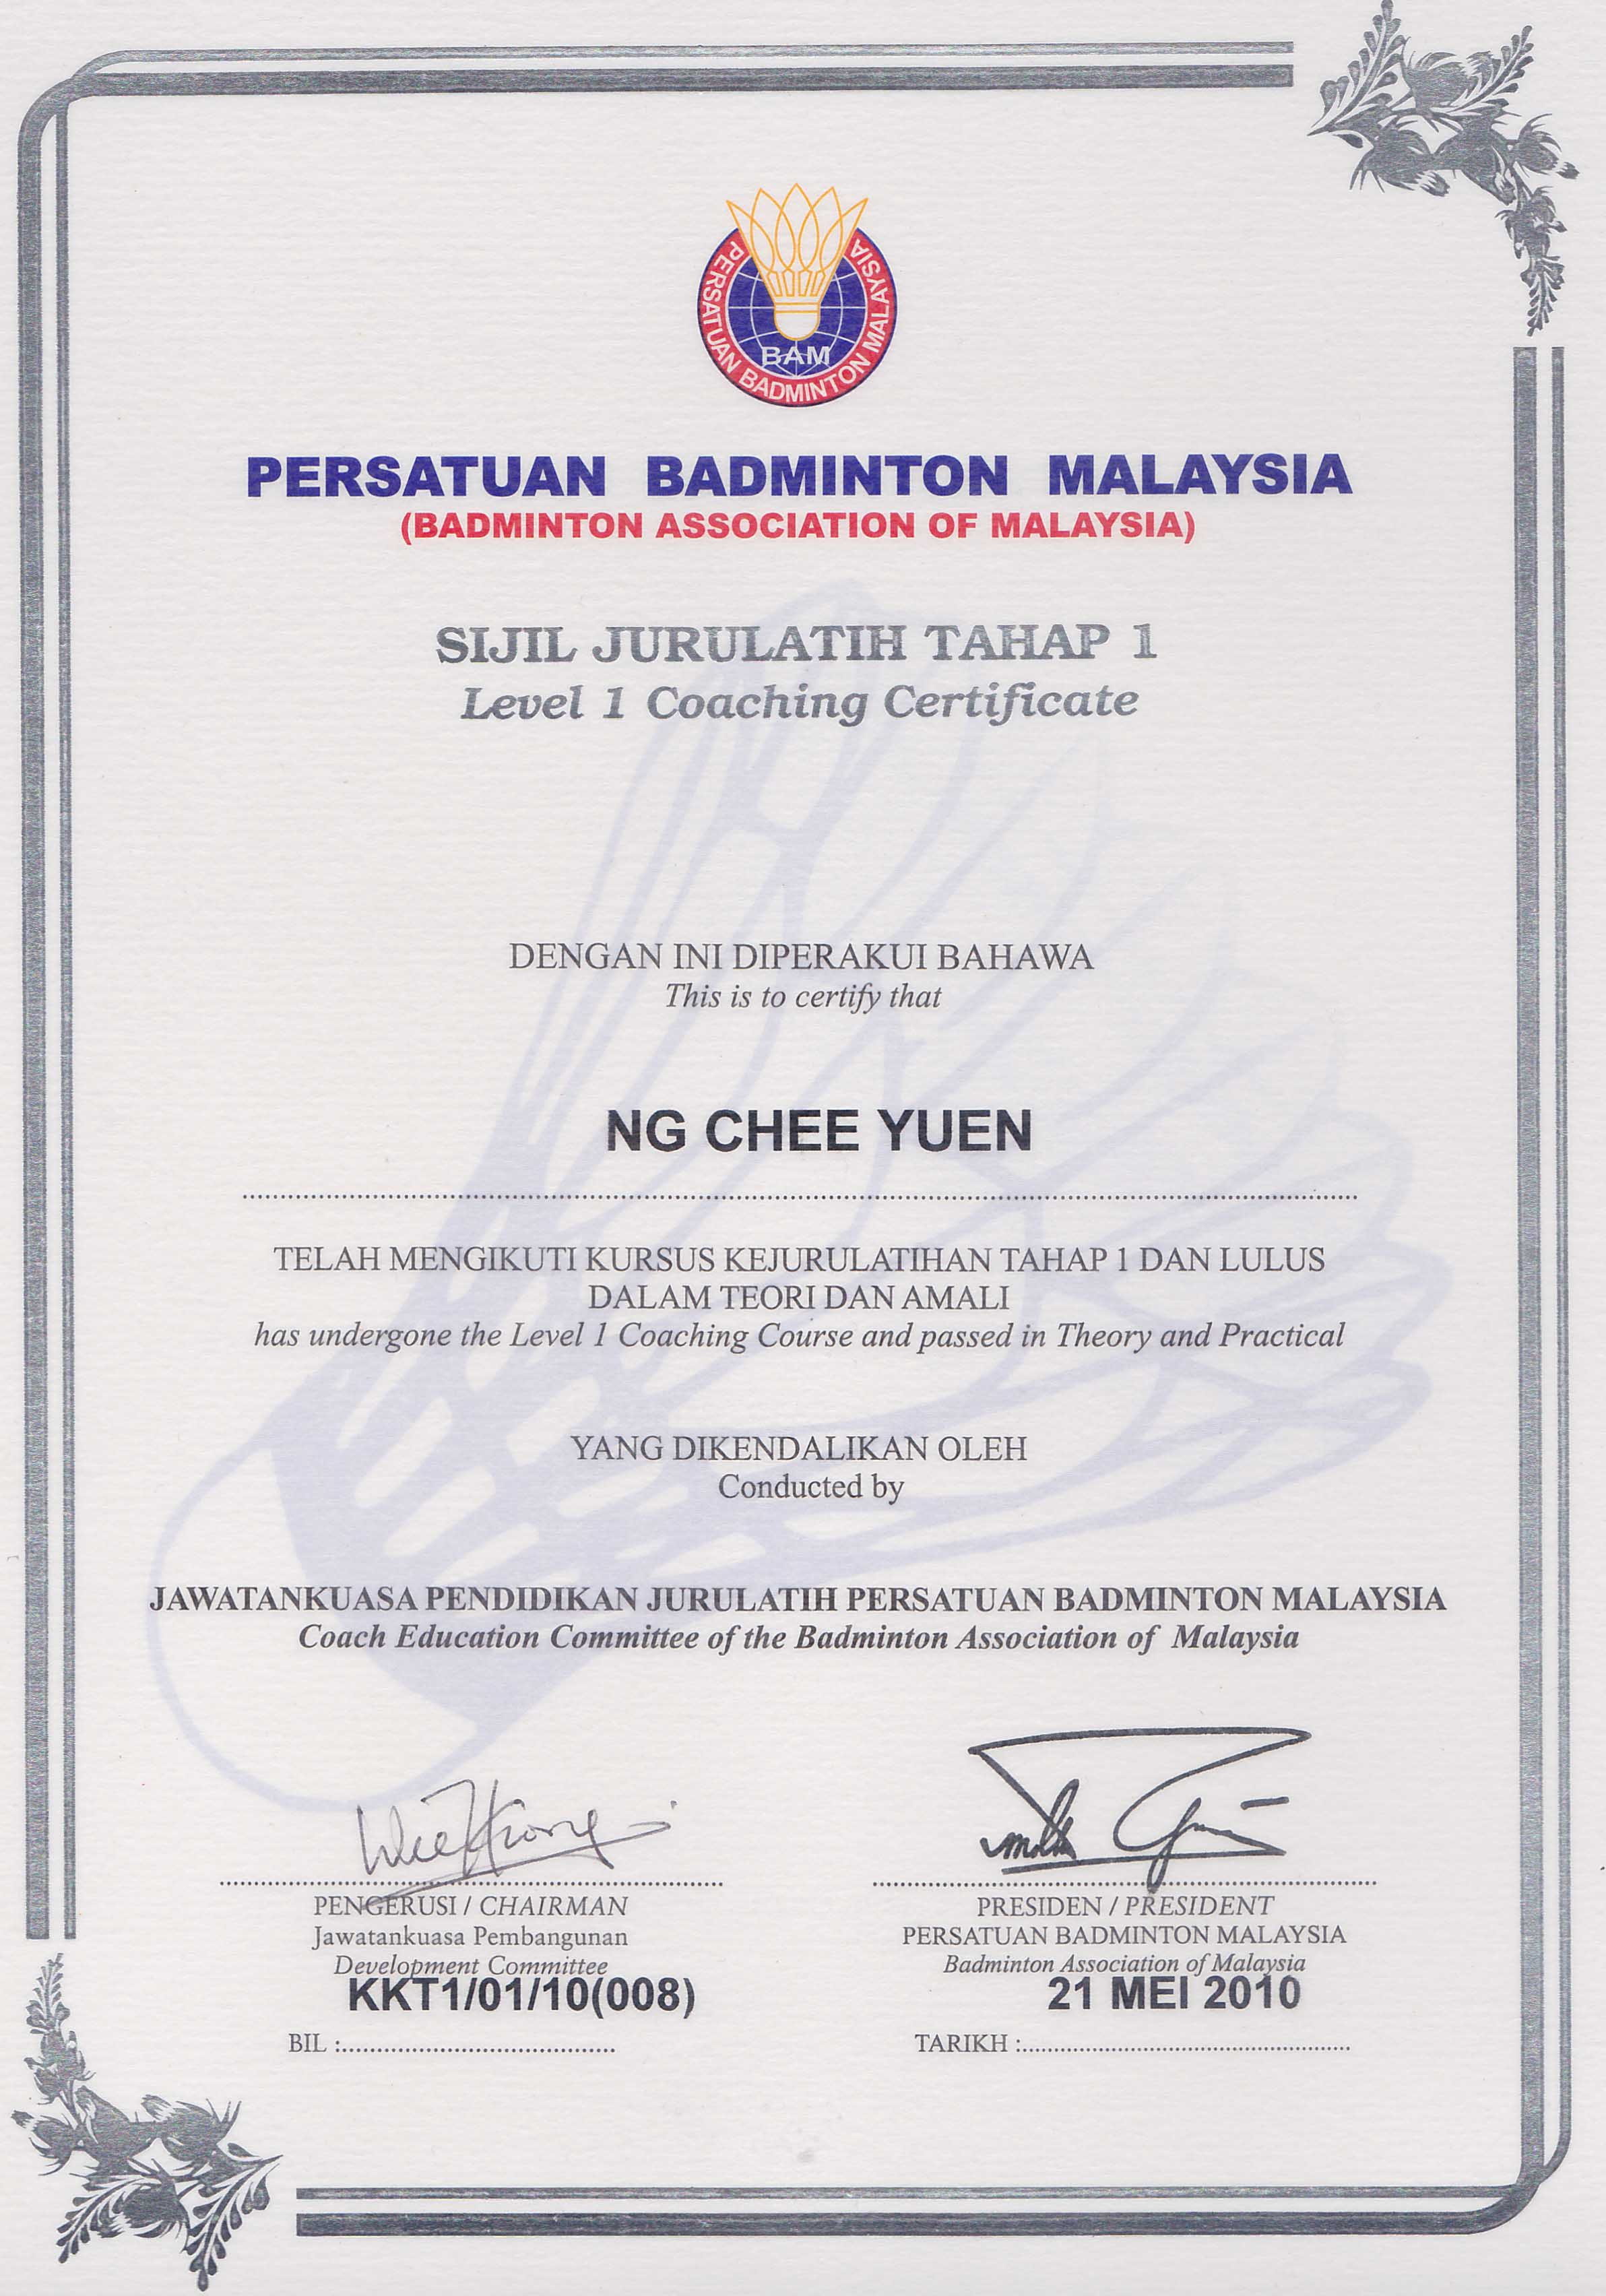 Yap twins sport management ytsm malaysias premier badminton certification bam certificate level 1 coaching course theory and practicle xflitez Images